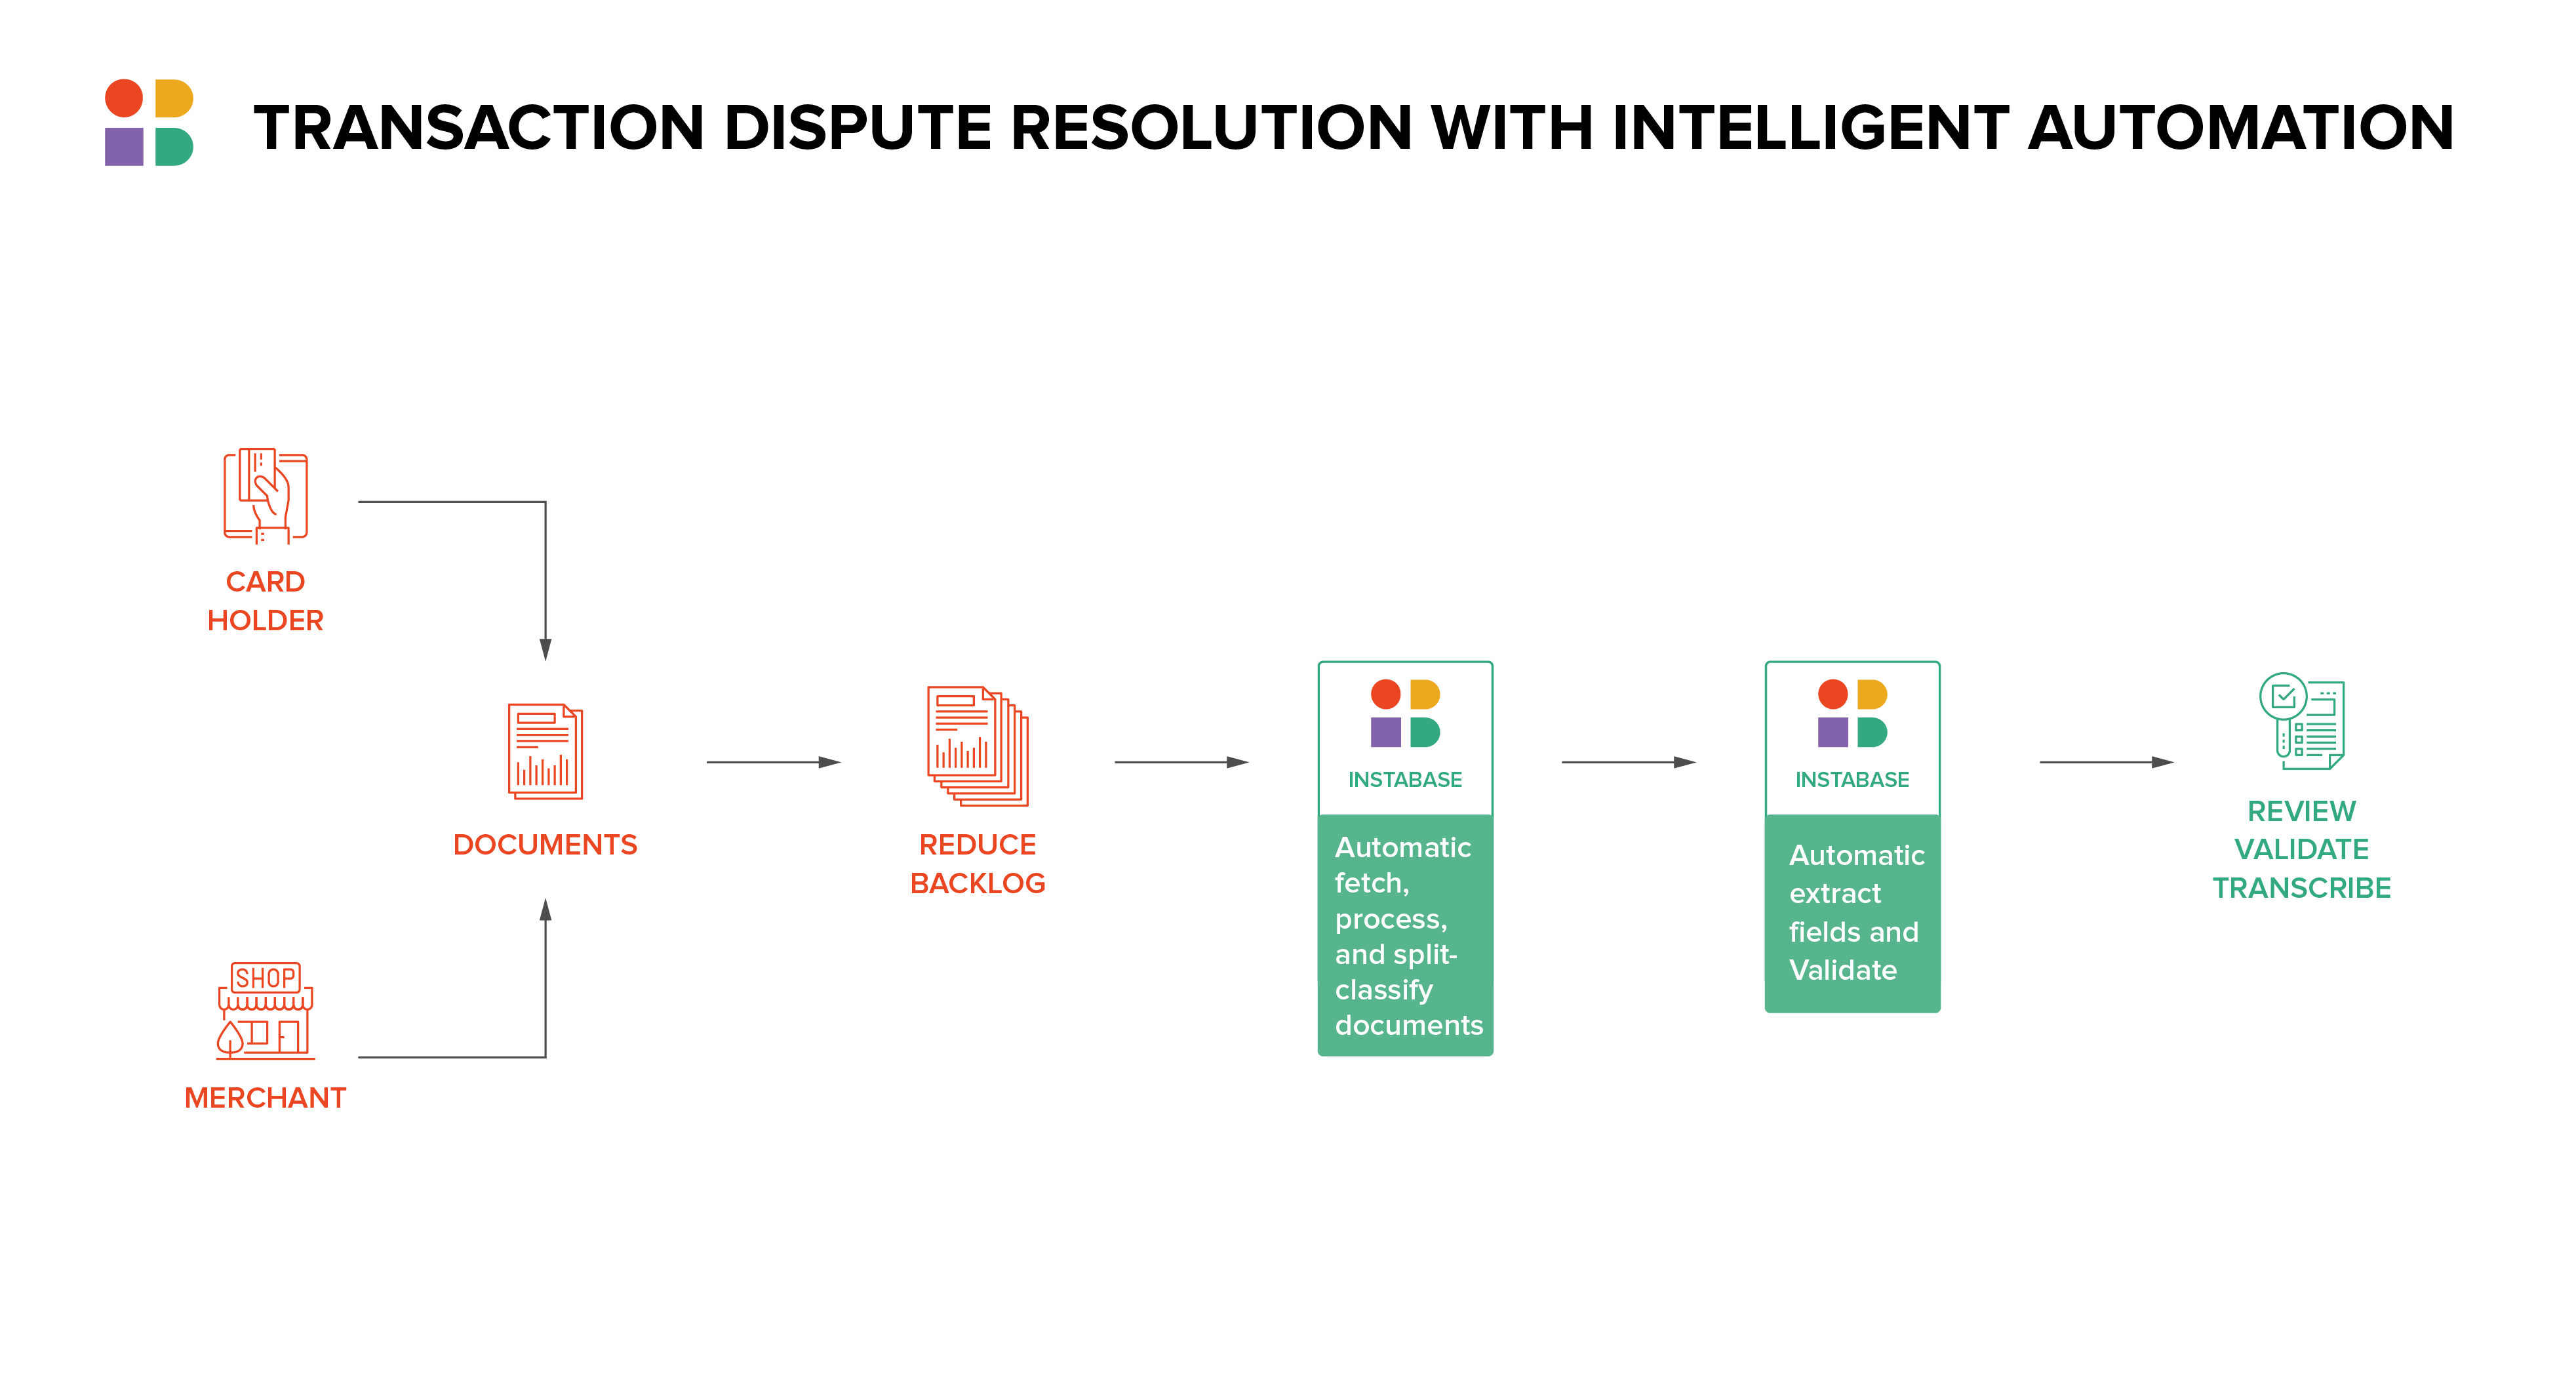 Transaction dispute resolution with intelligent automation